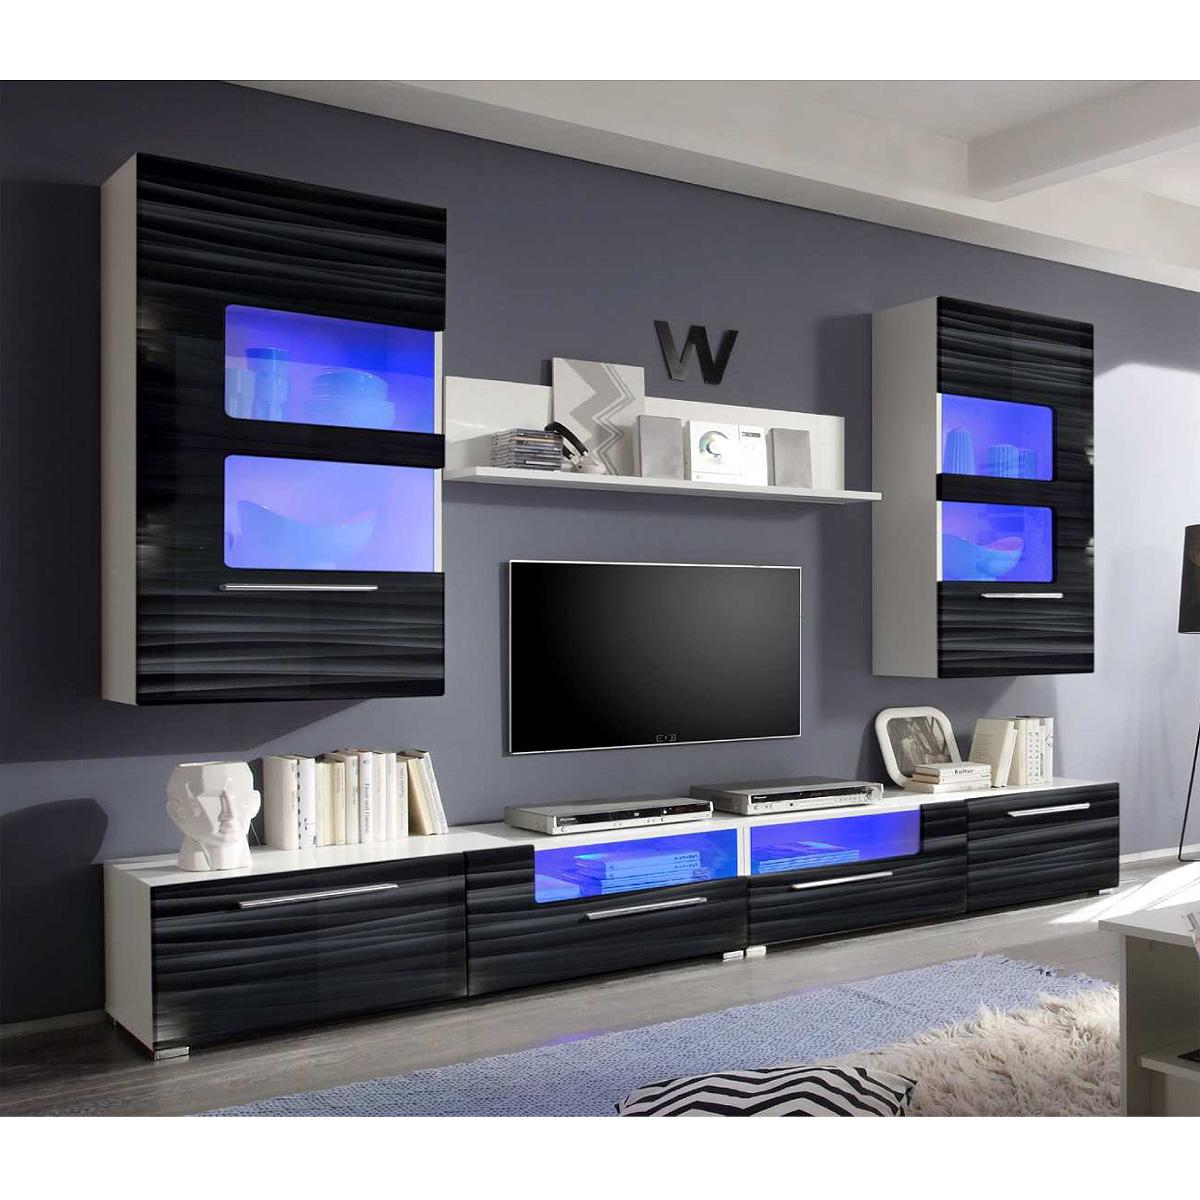 wohnwand corner anbauwand wohnzimmer sahara schwarz 3d folie wei mit led ebay. Black Bedroom Furniture Sets. Home Design Ideas